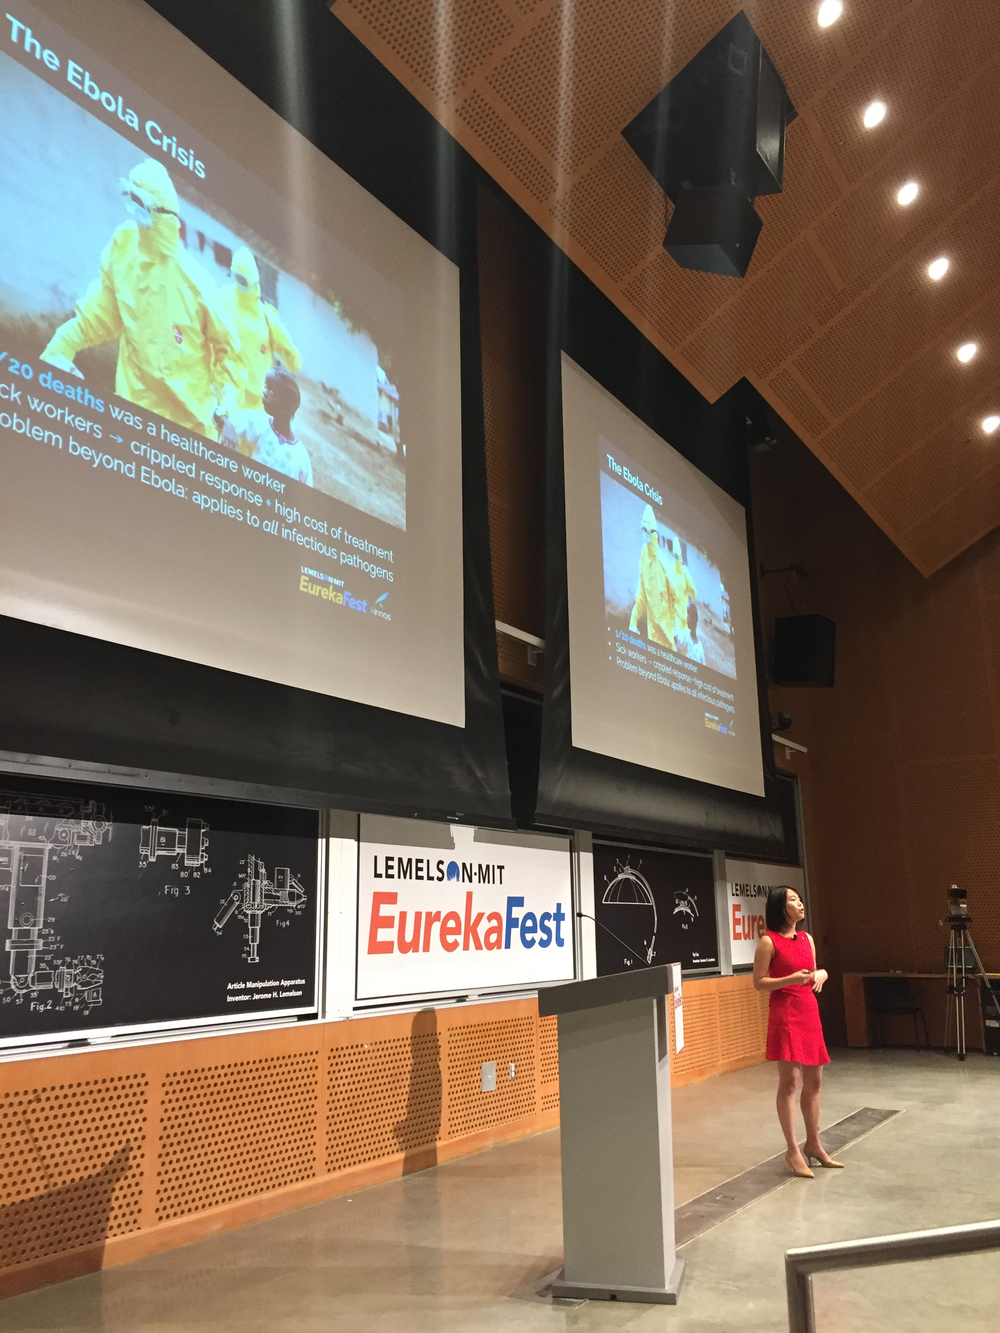 Katherine presenting at Lemelson-MIT EurekaFest in Boston, June 2016.